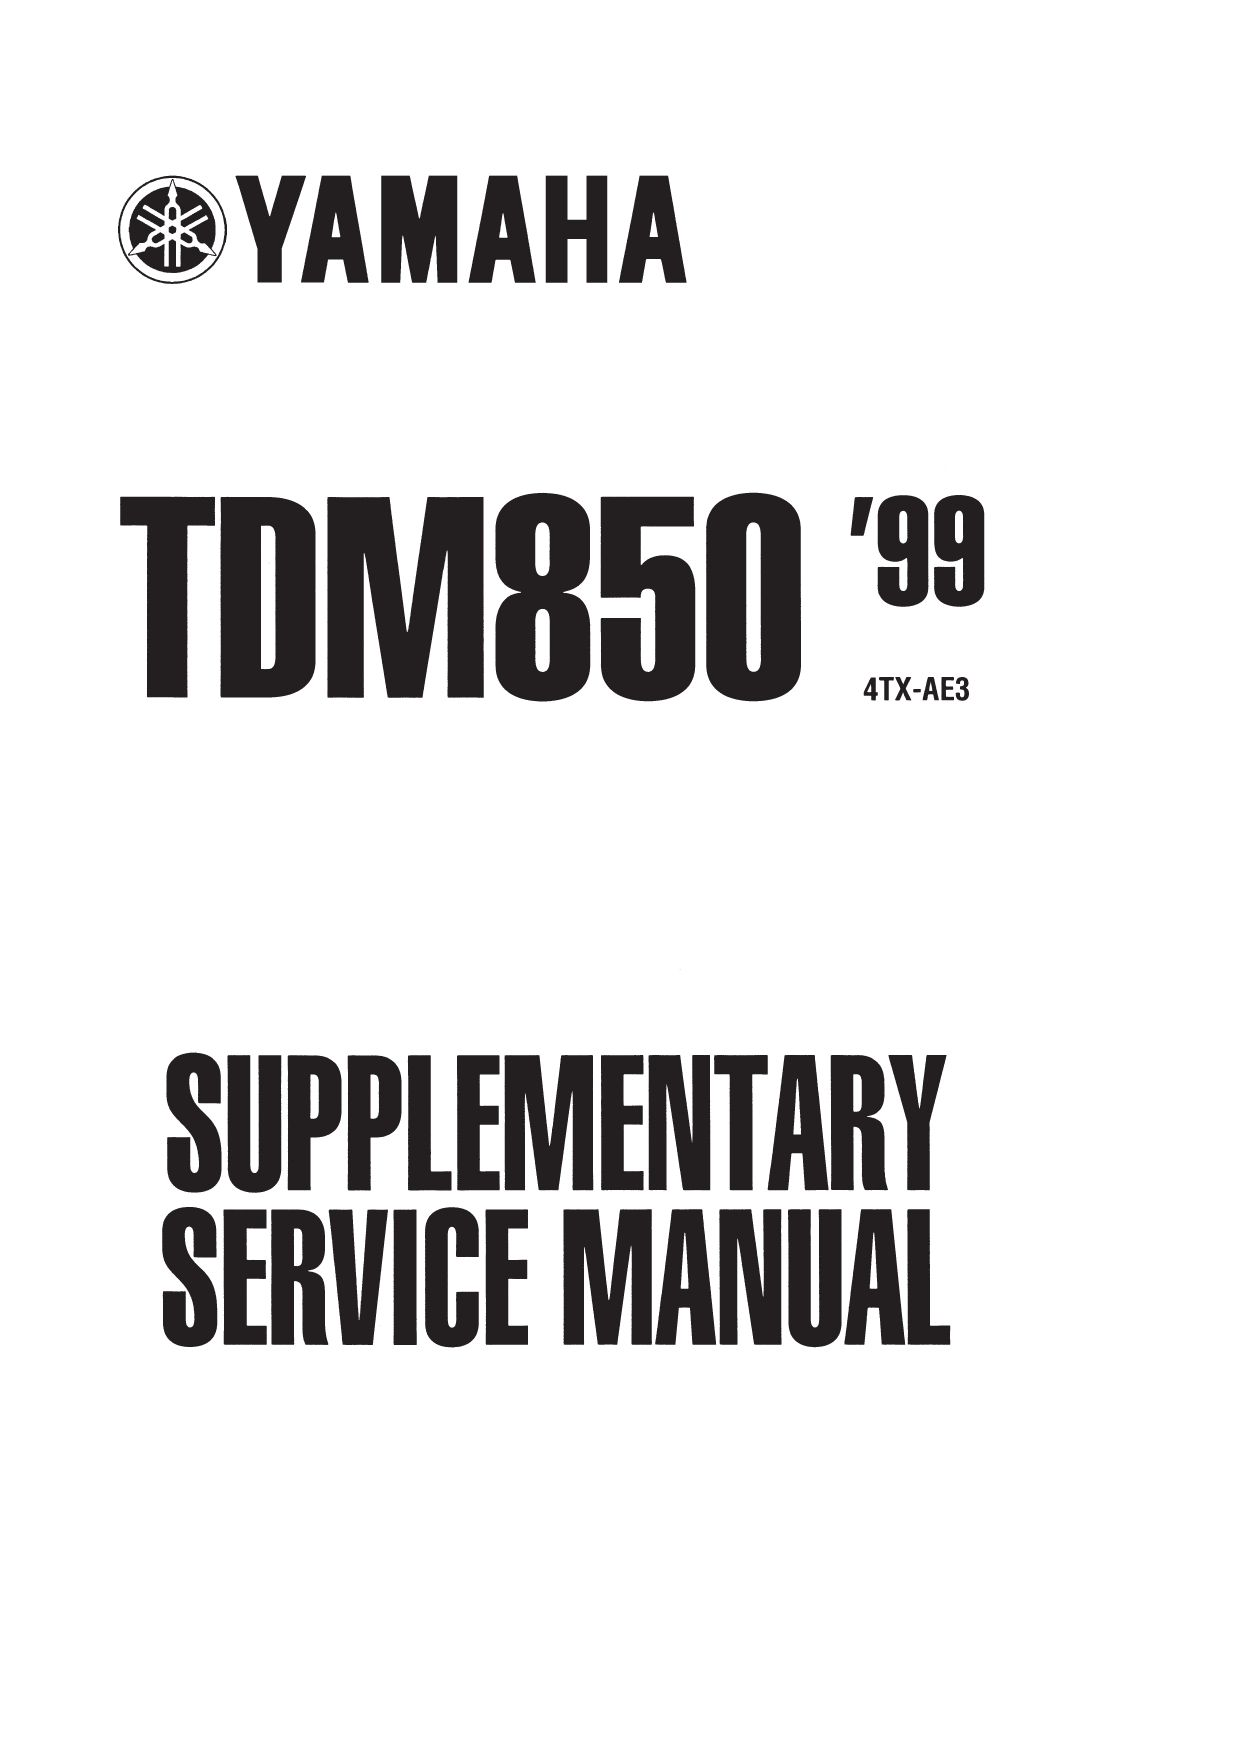 yamaha trx 850 wiring diagram trx850 by pablo ursemmi issuu  trx850 by pablo ursemmi issuu